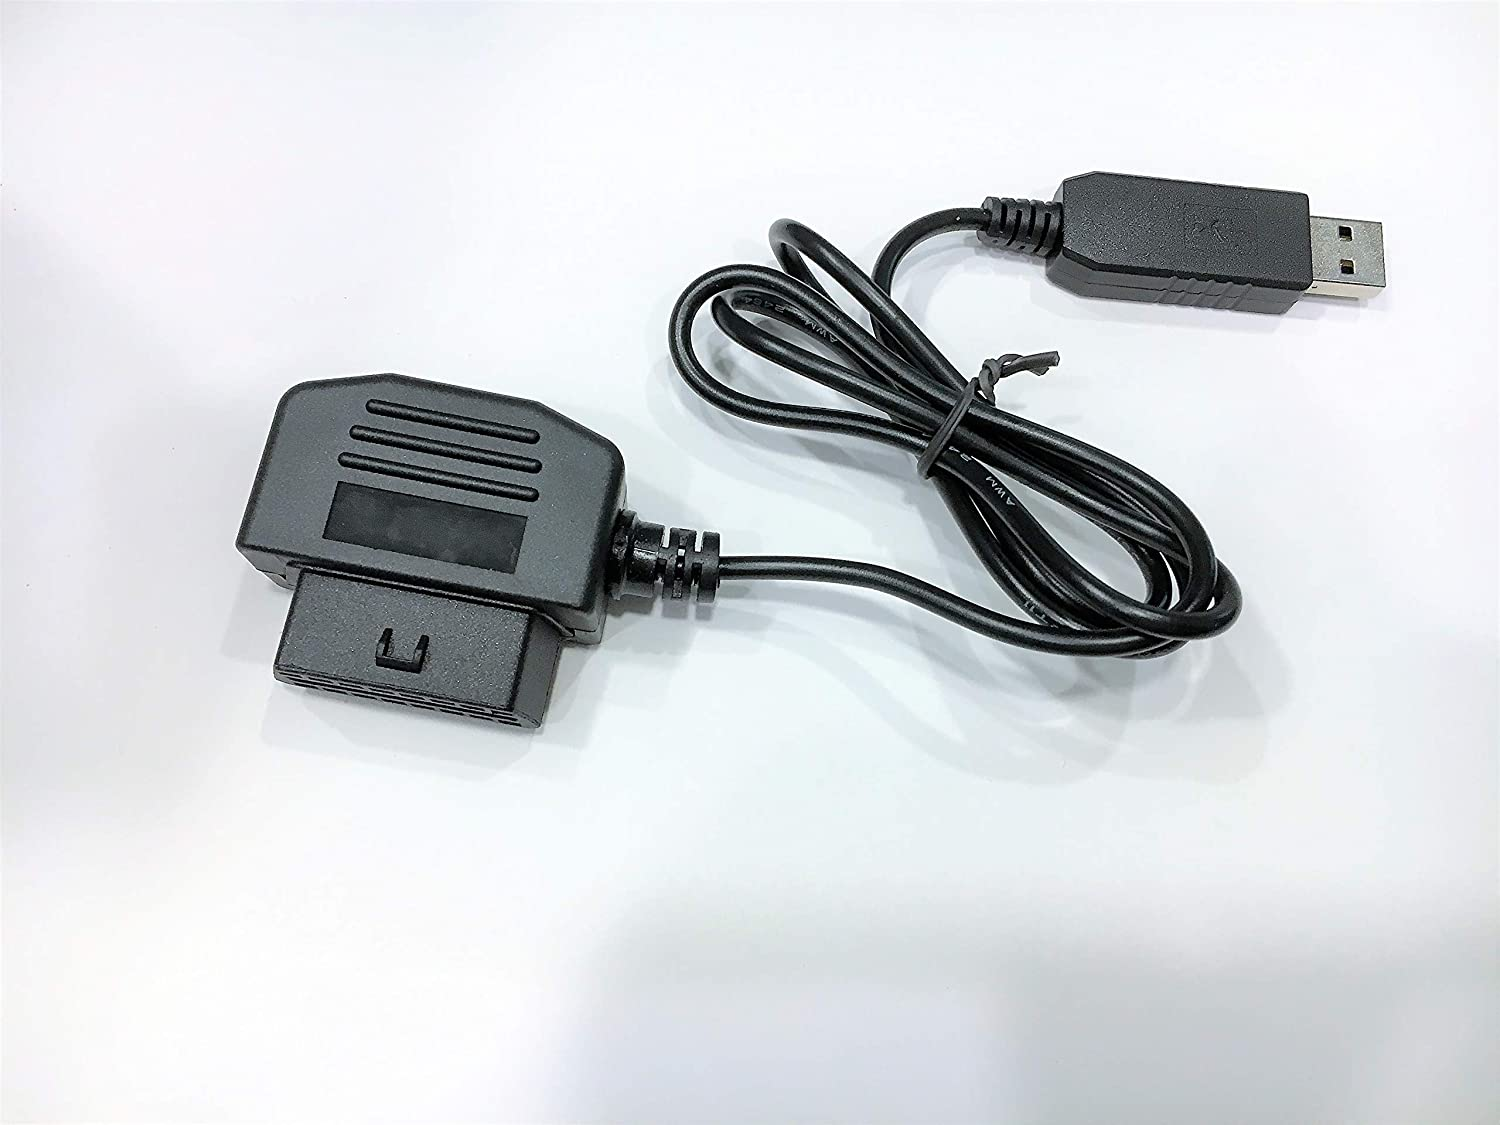 OBD II LTE Wi-Fi Hotspot Device USB Adapter for T-Mobile SyncUp DRIVE